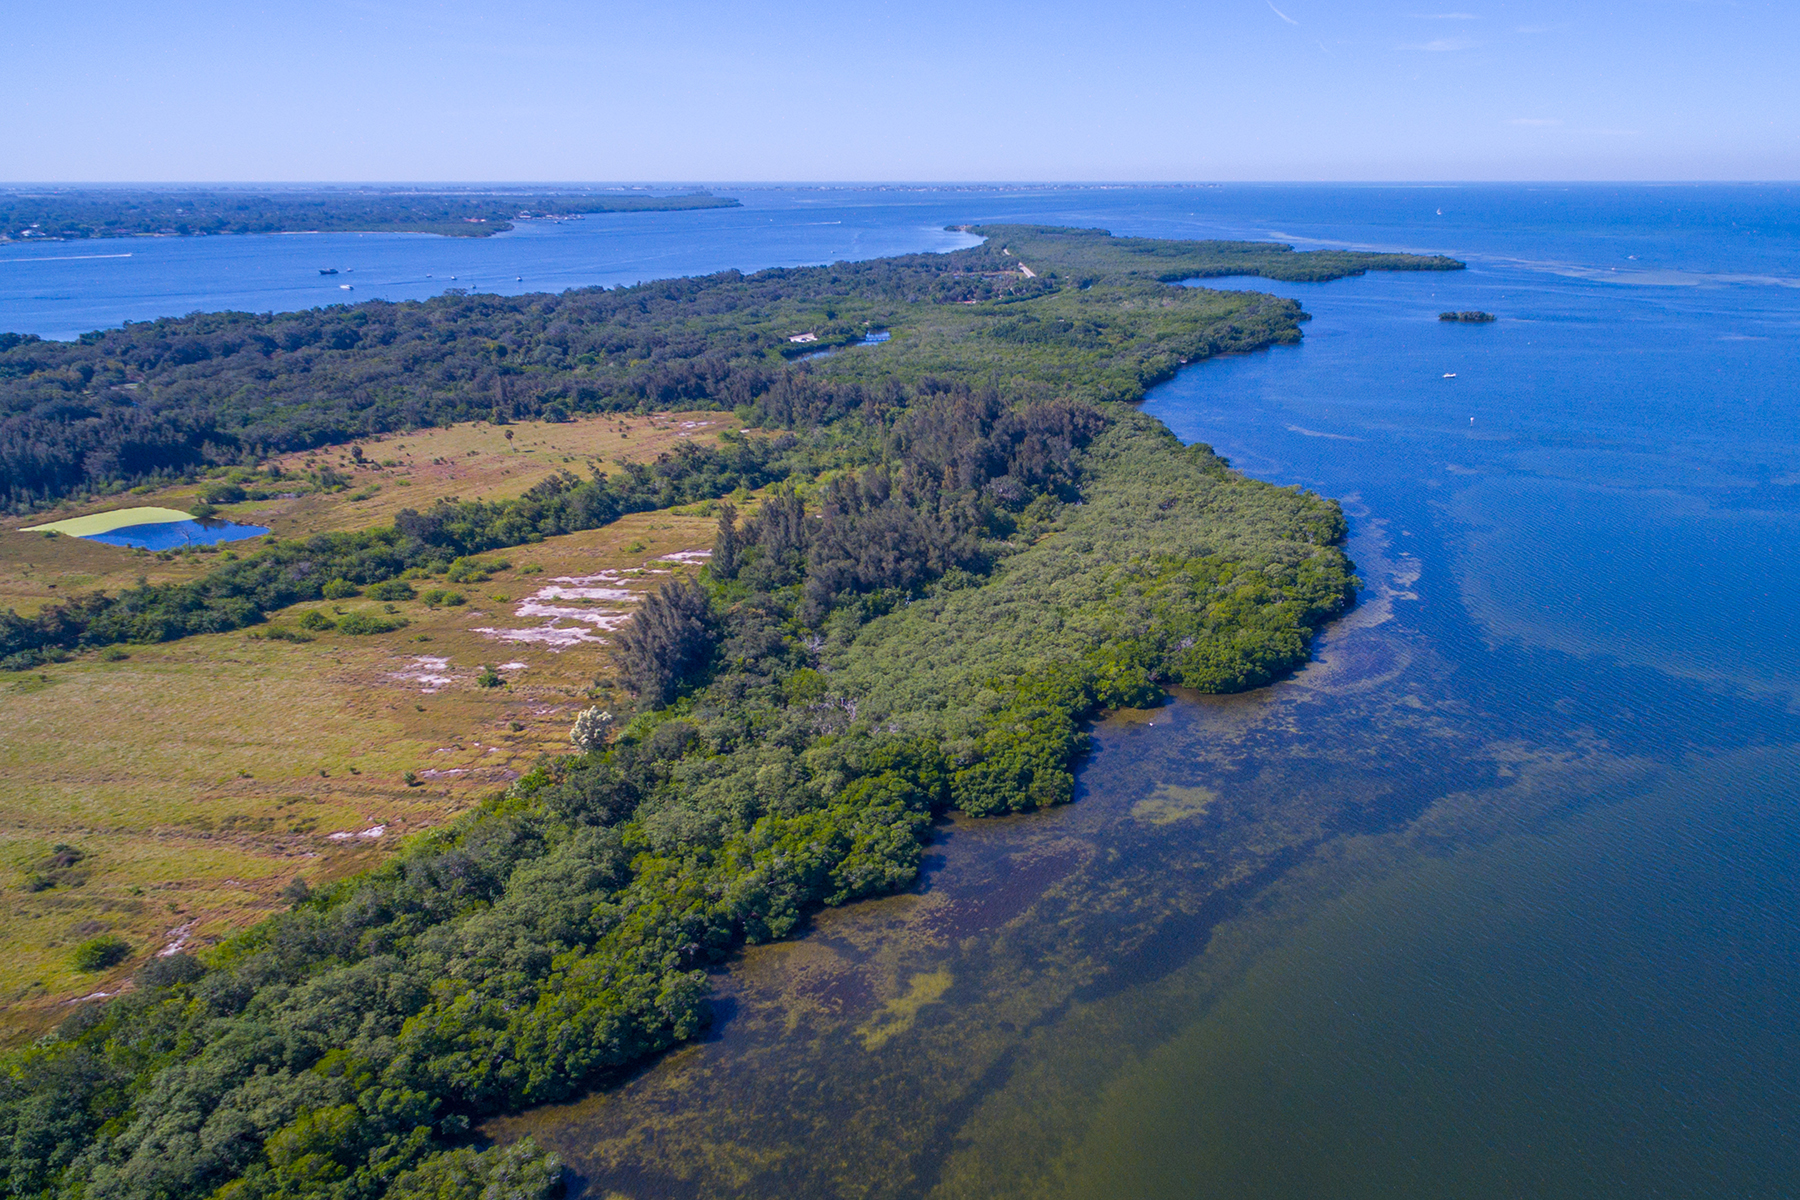 Land for Sale at SNEAD ISLAND 5200 W 17th St 0 Palmetto, Florida, 34221 United States